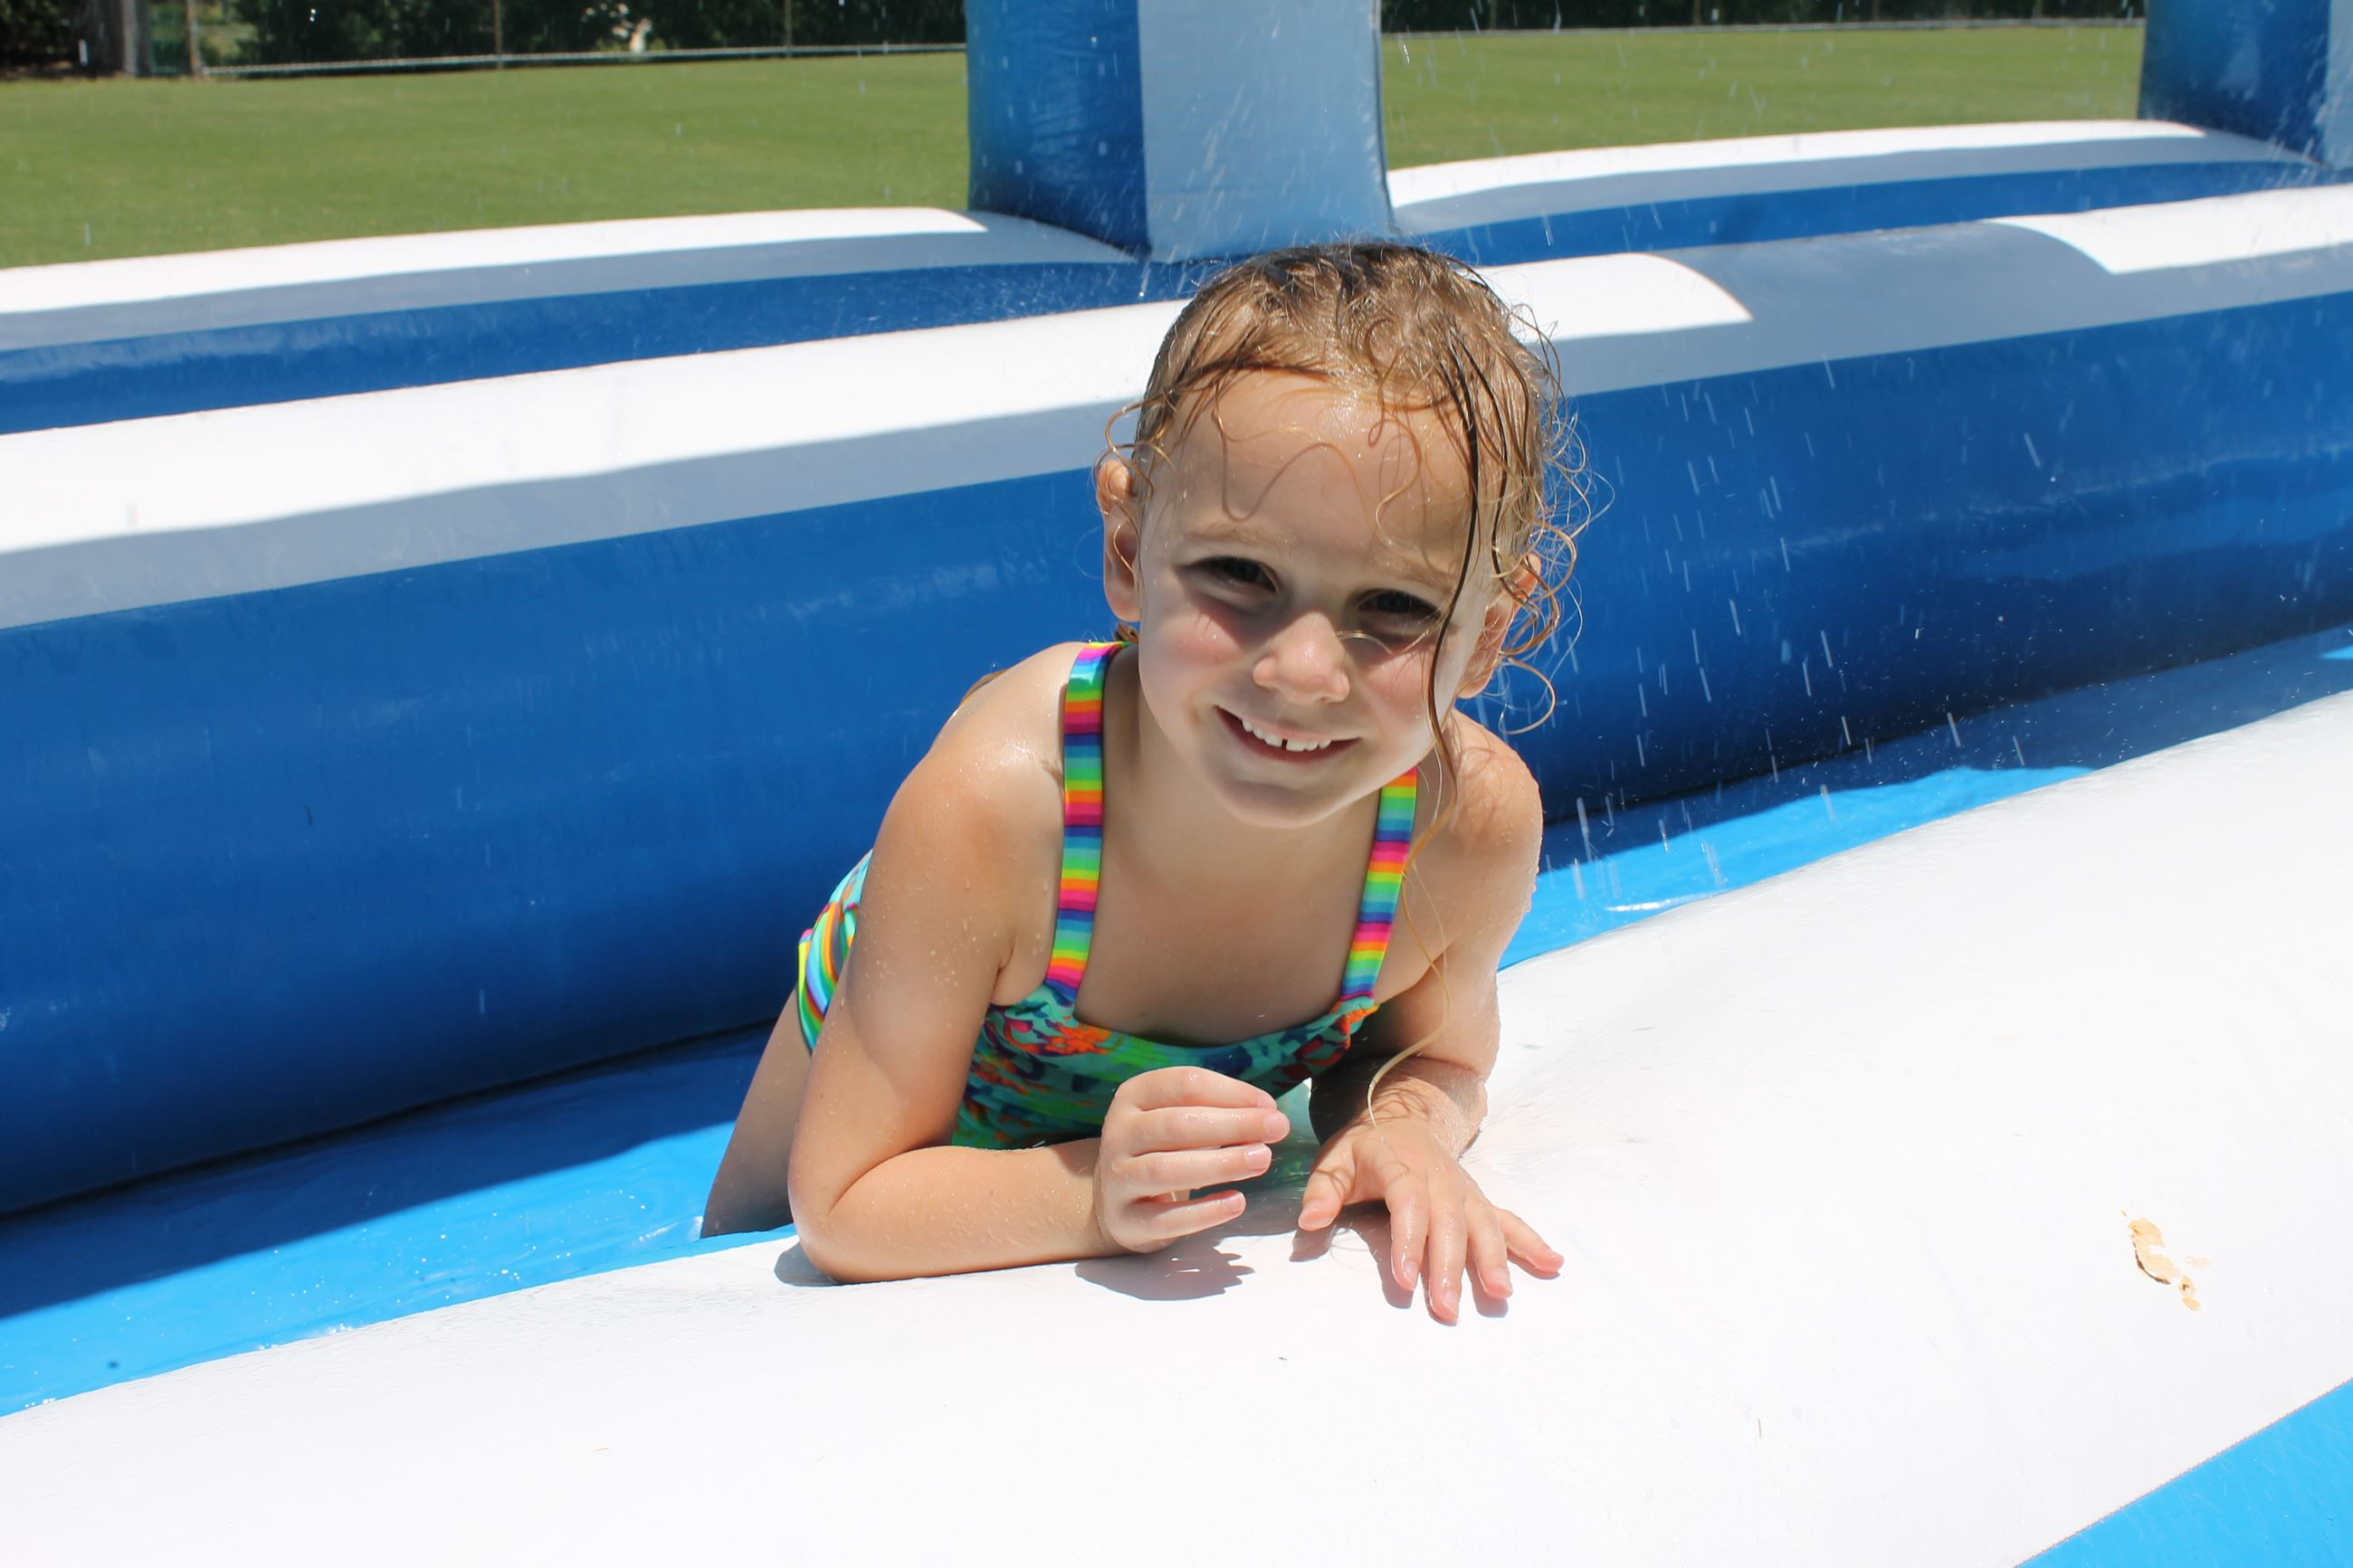 Girl smiles while on a water slide